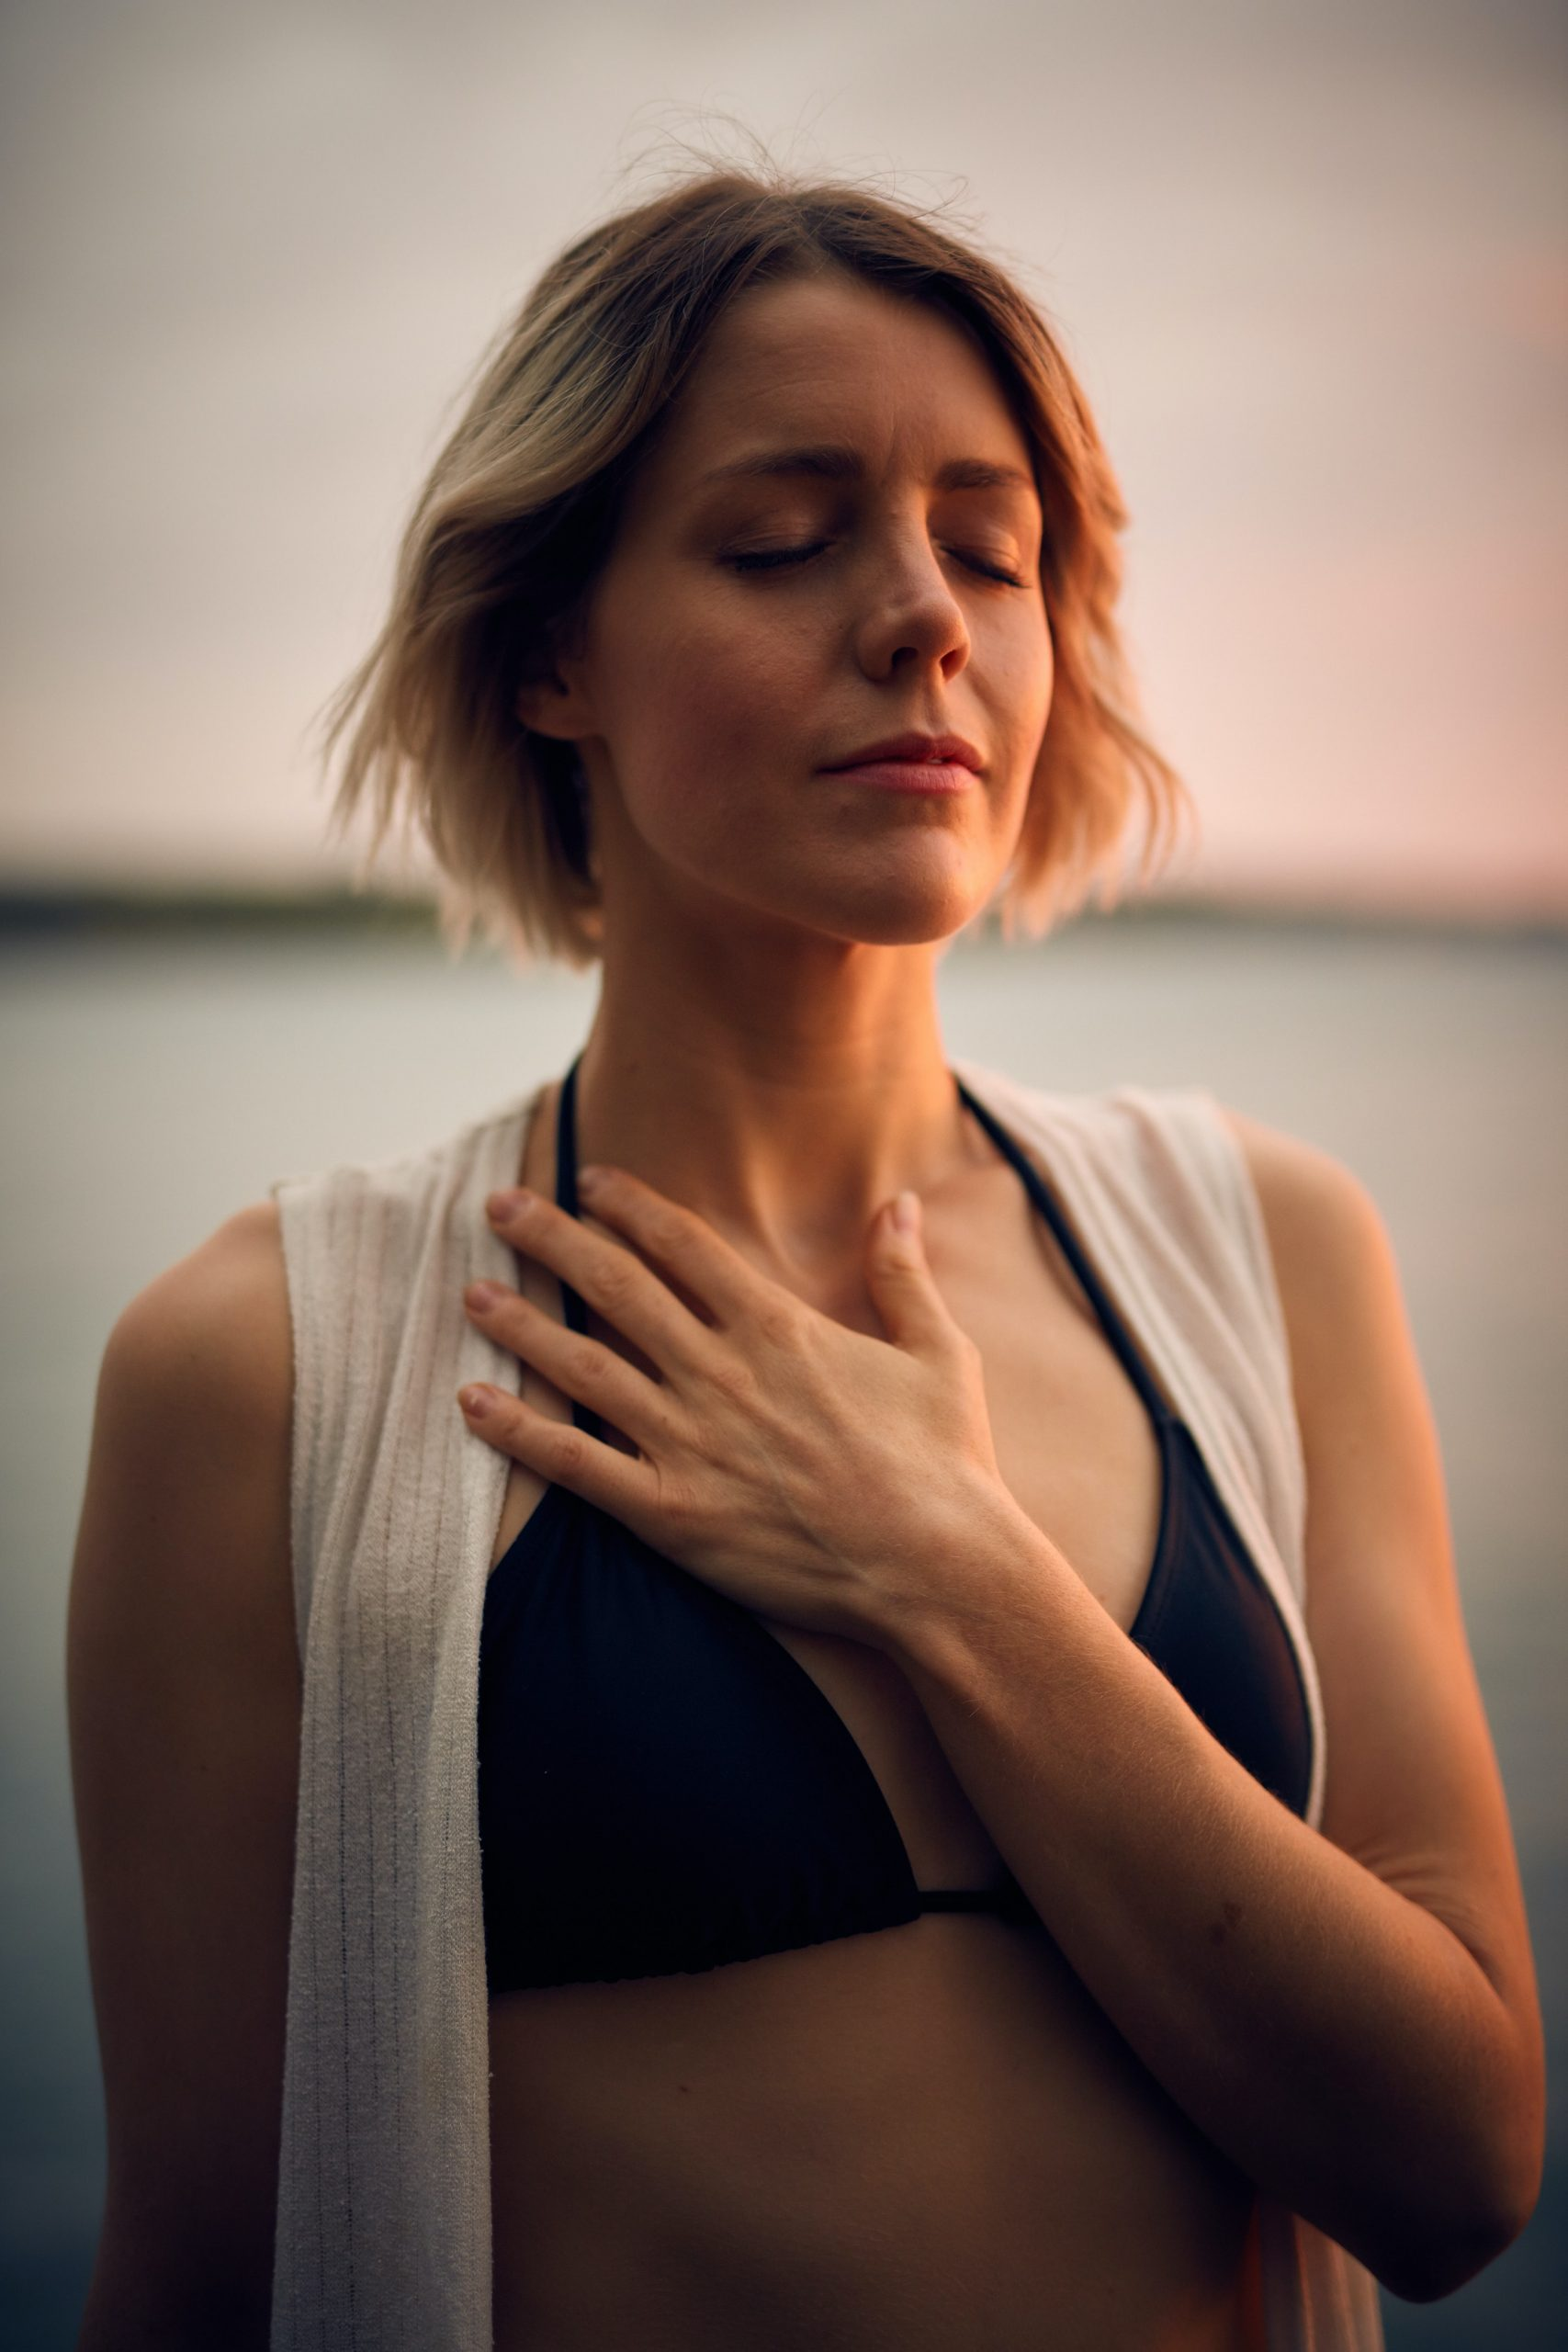 How to use Yoga and Meditation for self-care